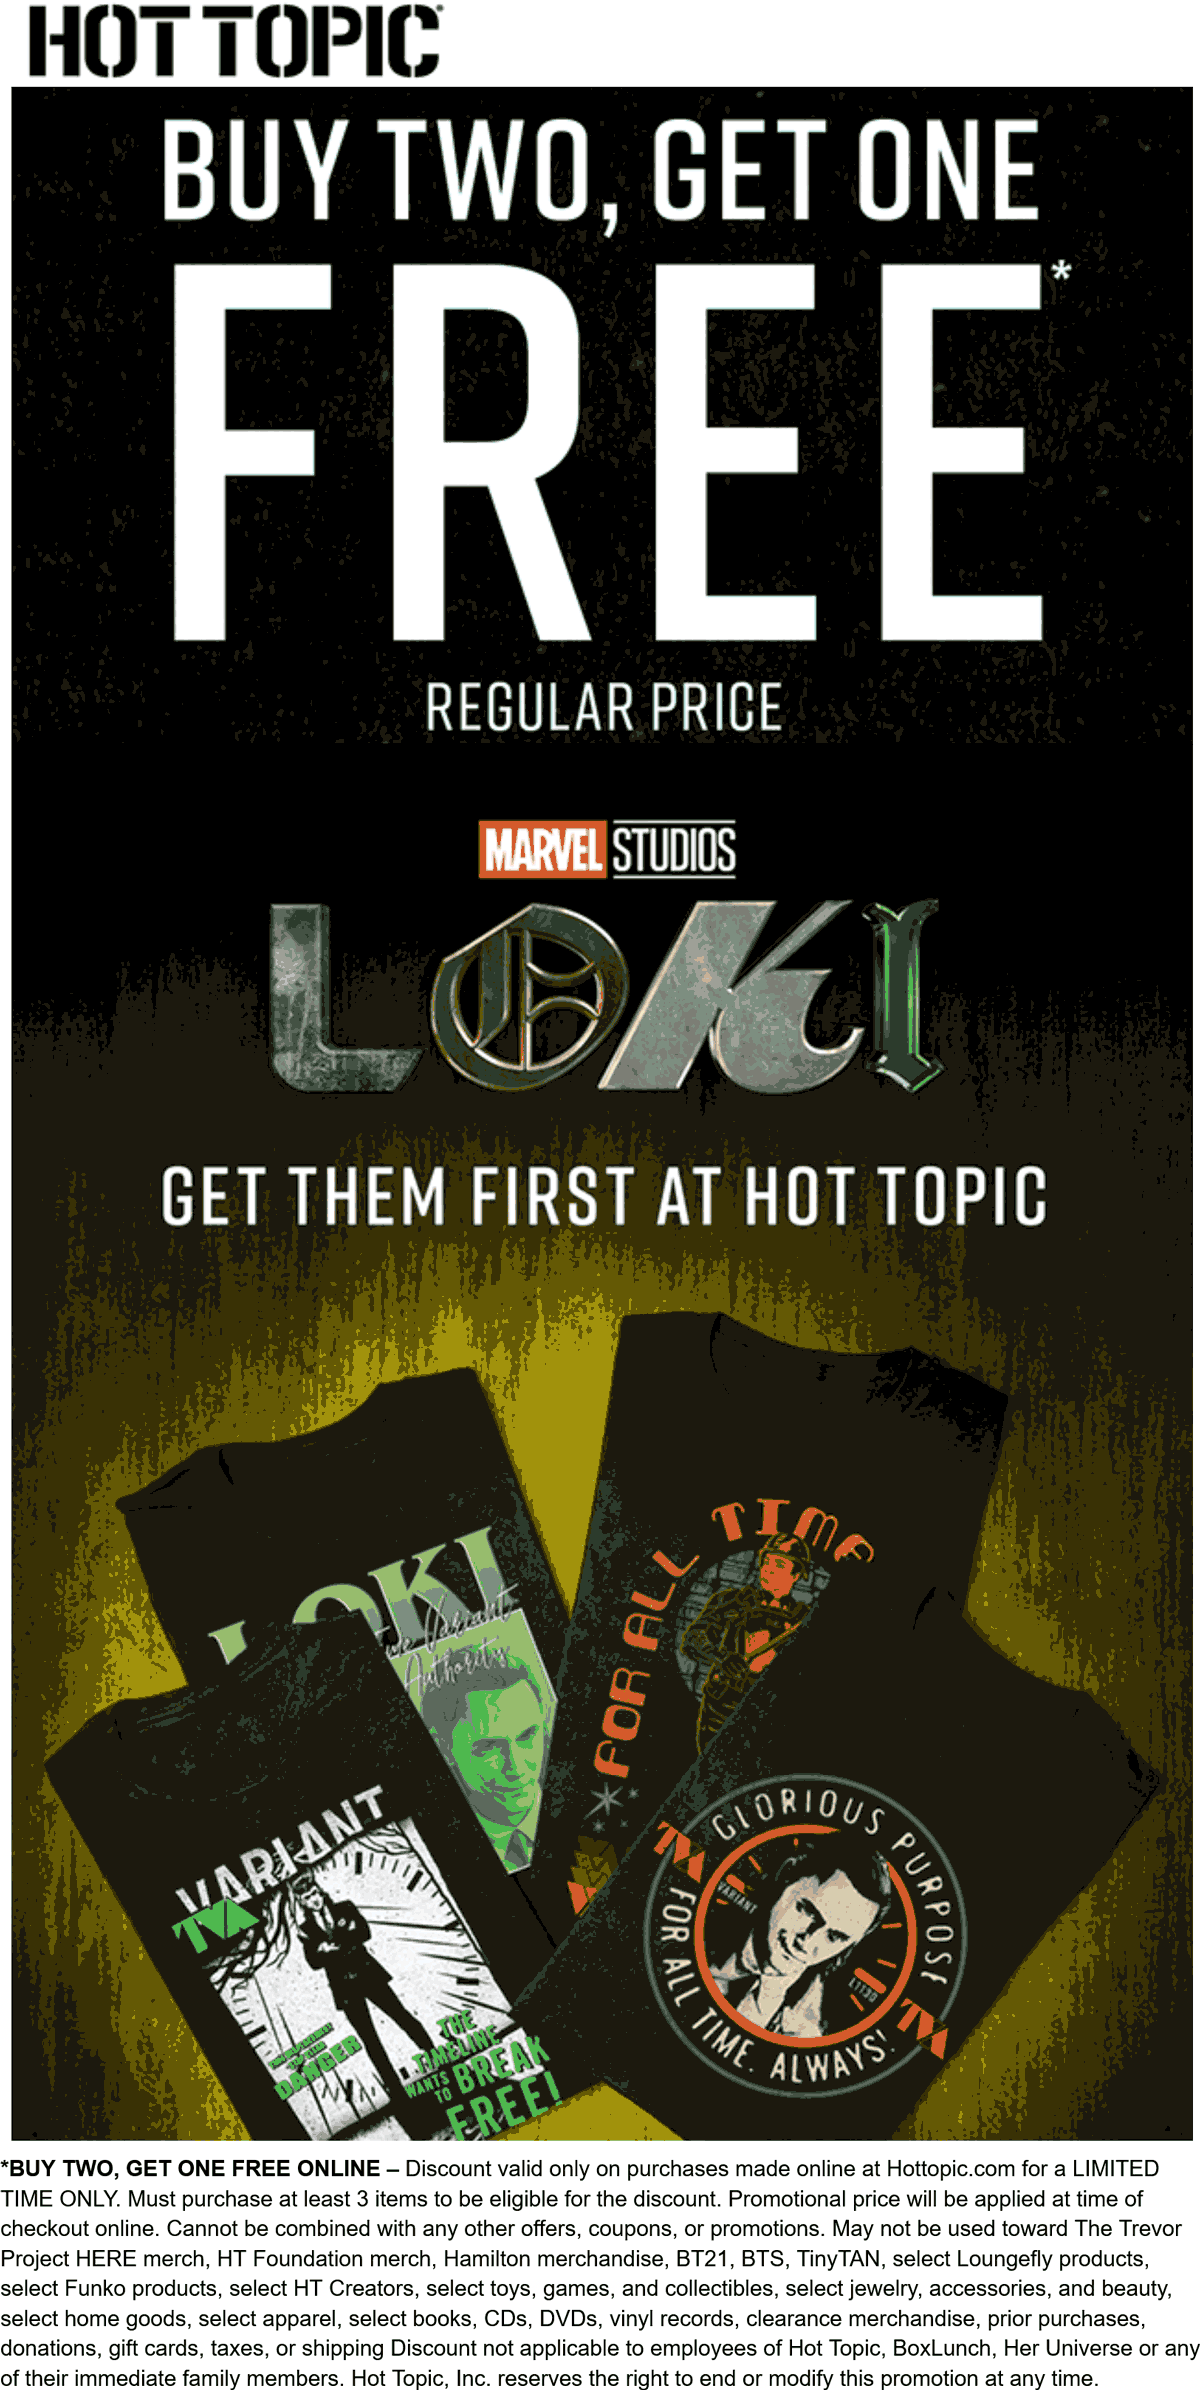 Hot Topic stores Coupon  3rd item free online at Hot Topic #hottopic